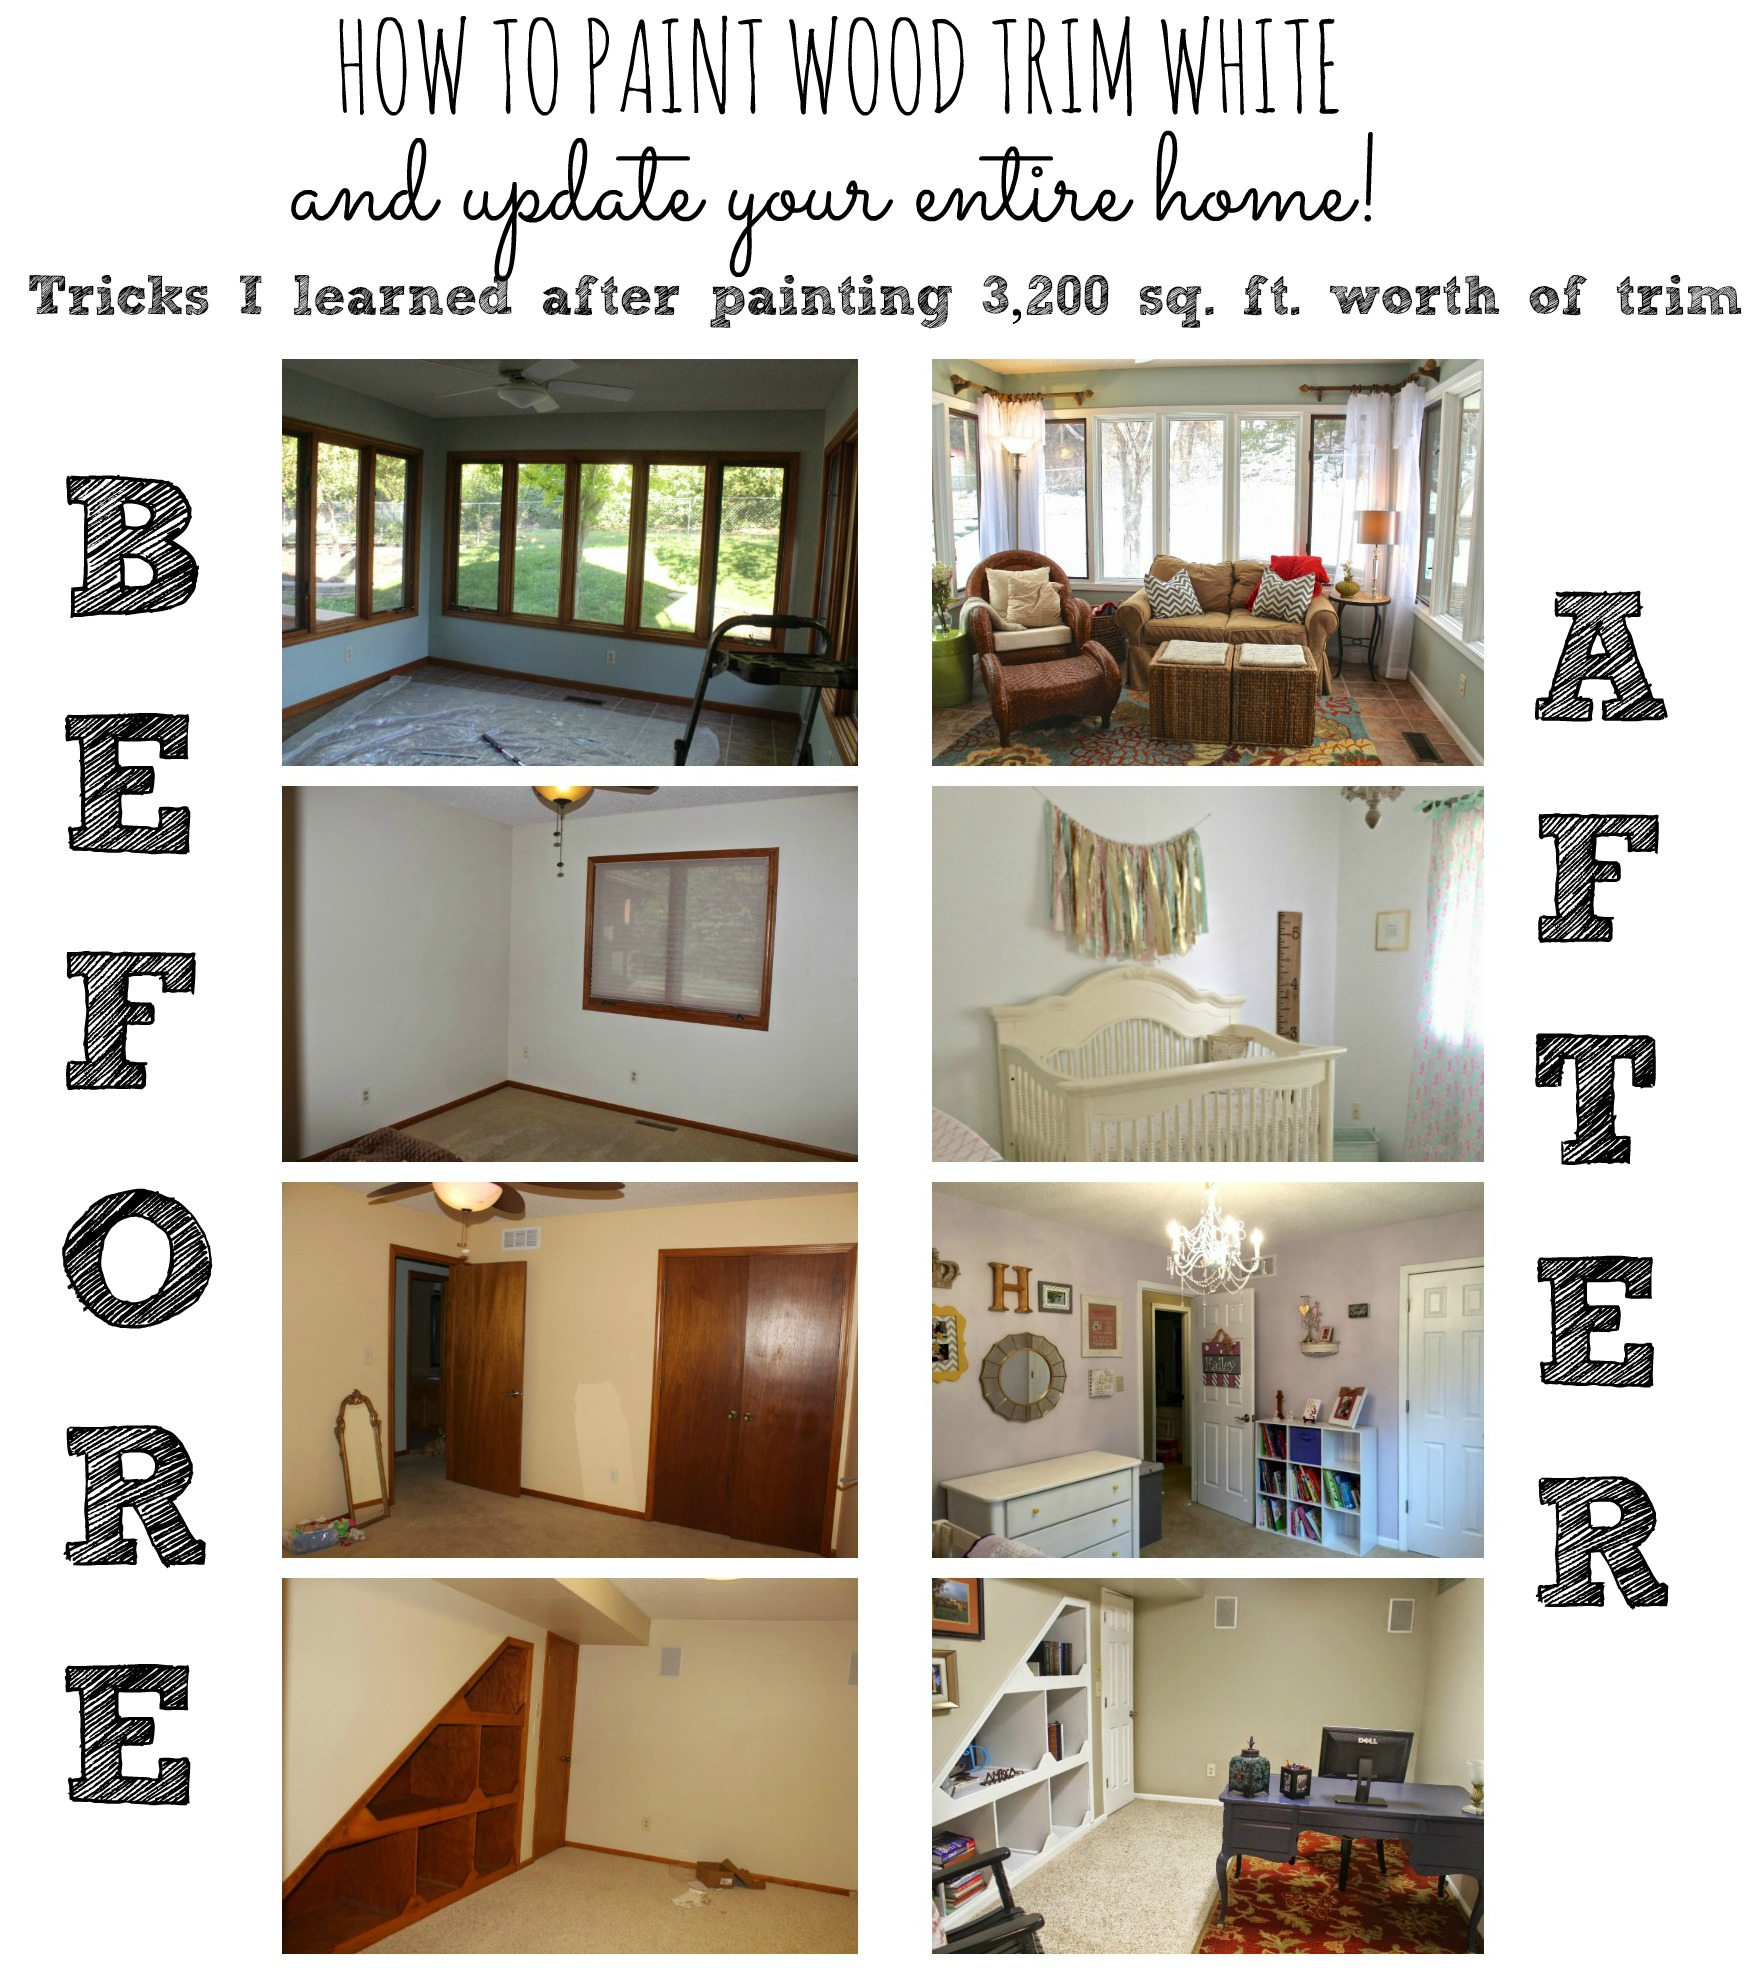 Painting Your Trim Is One Of The Cheapest Ways To Update Your Home. Here Are